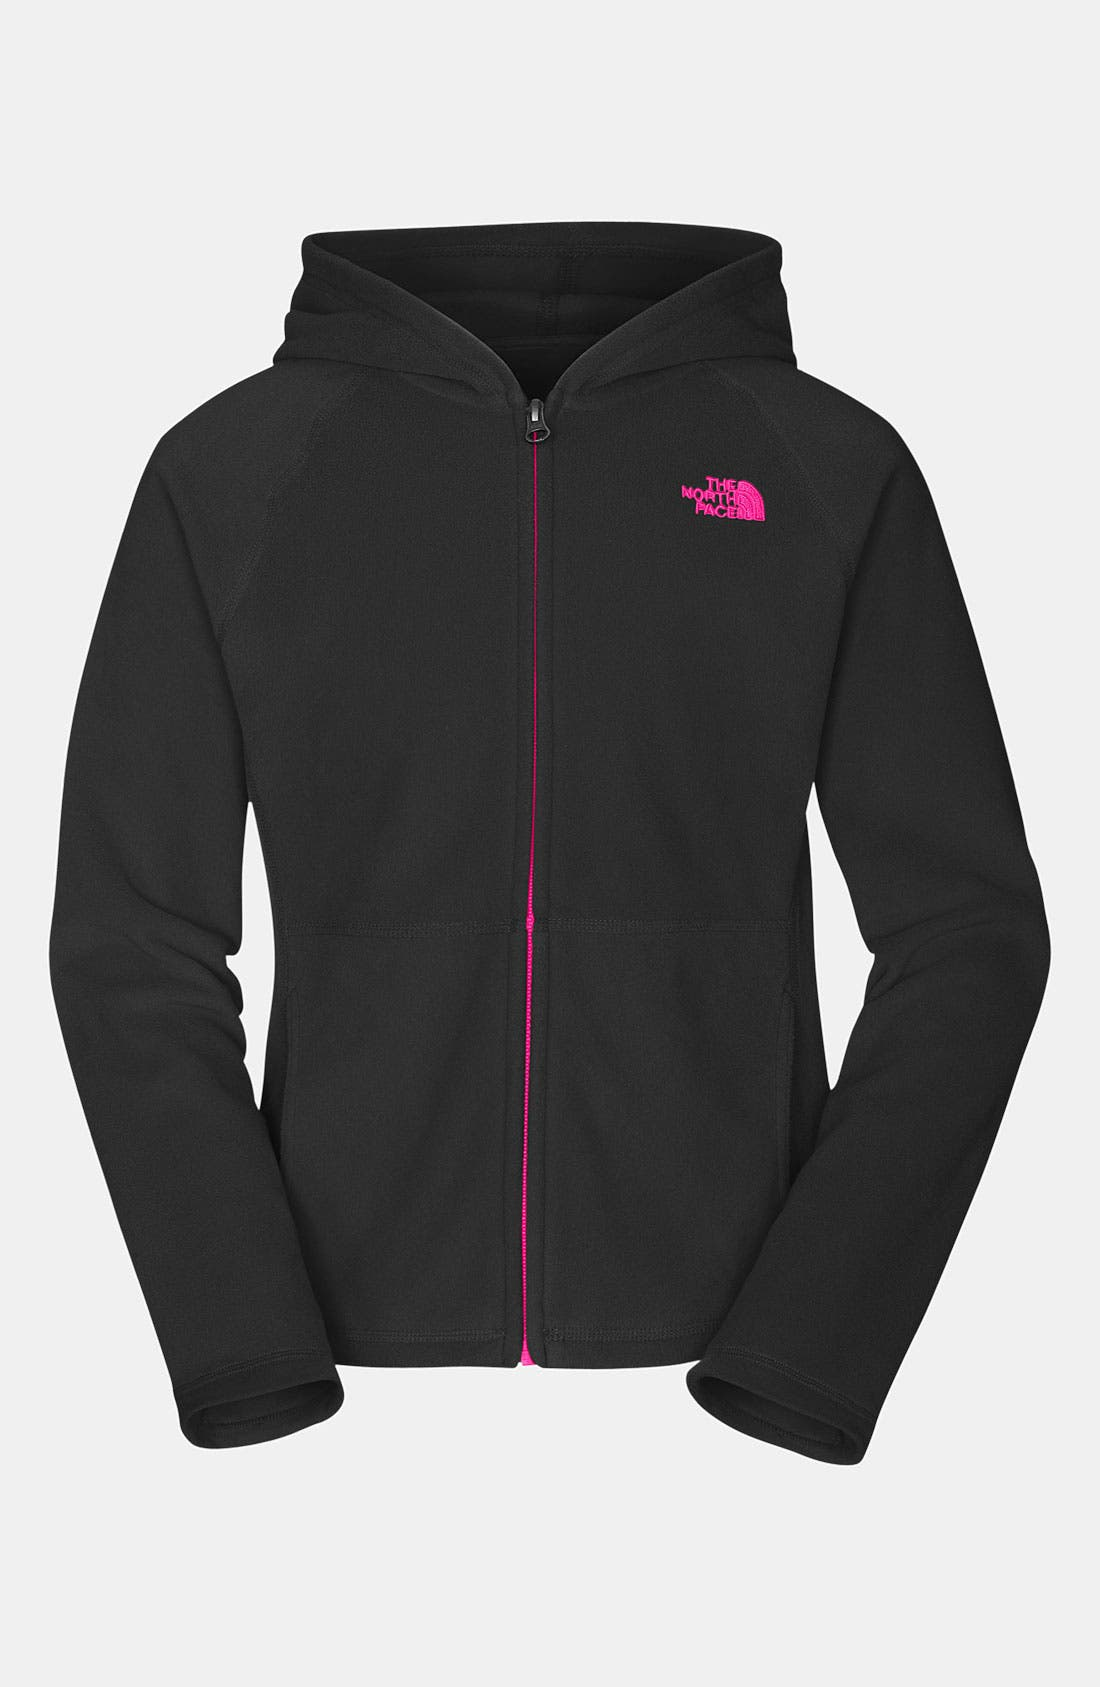 Alternate Image 1 Selected - The North Face 'Glacier' Full Zip Hoodie (Little Girls)